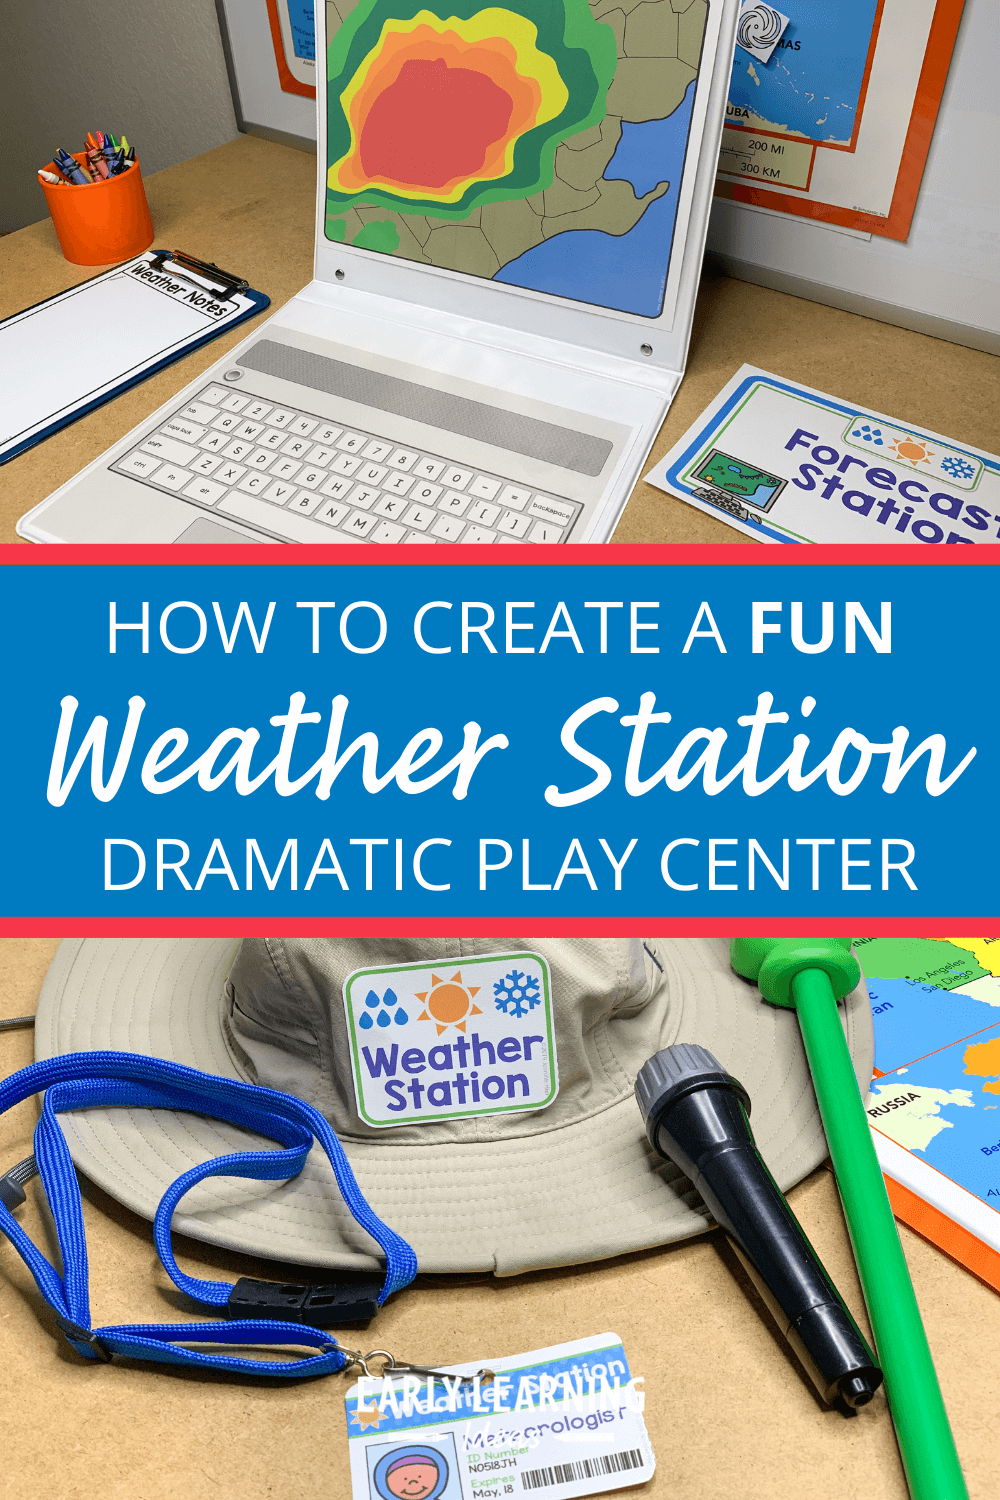 How to Set up a Weather Station Dramatic Play Area